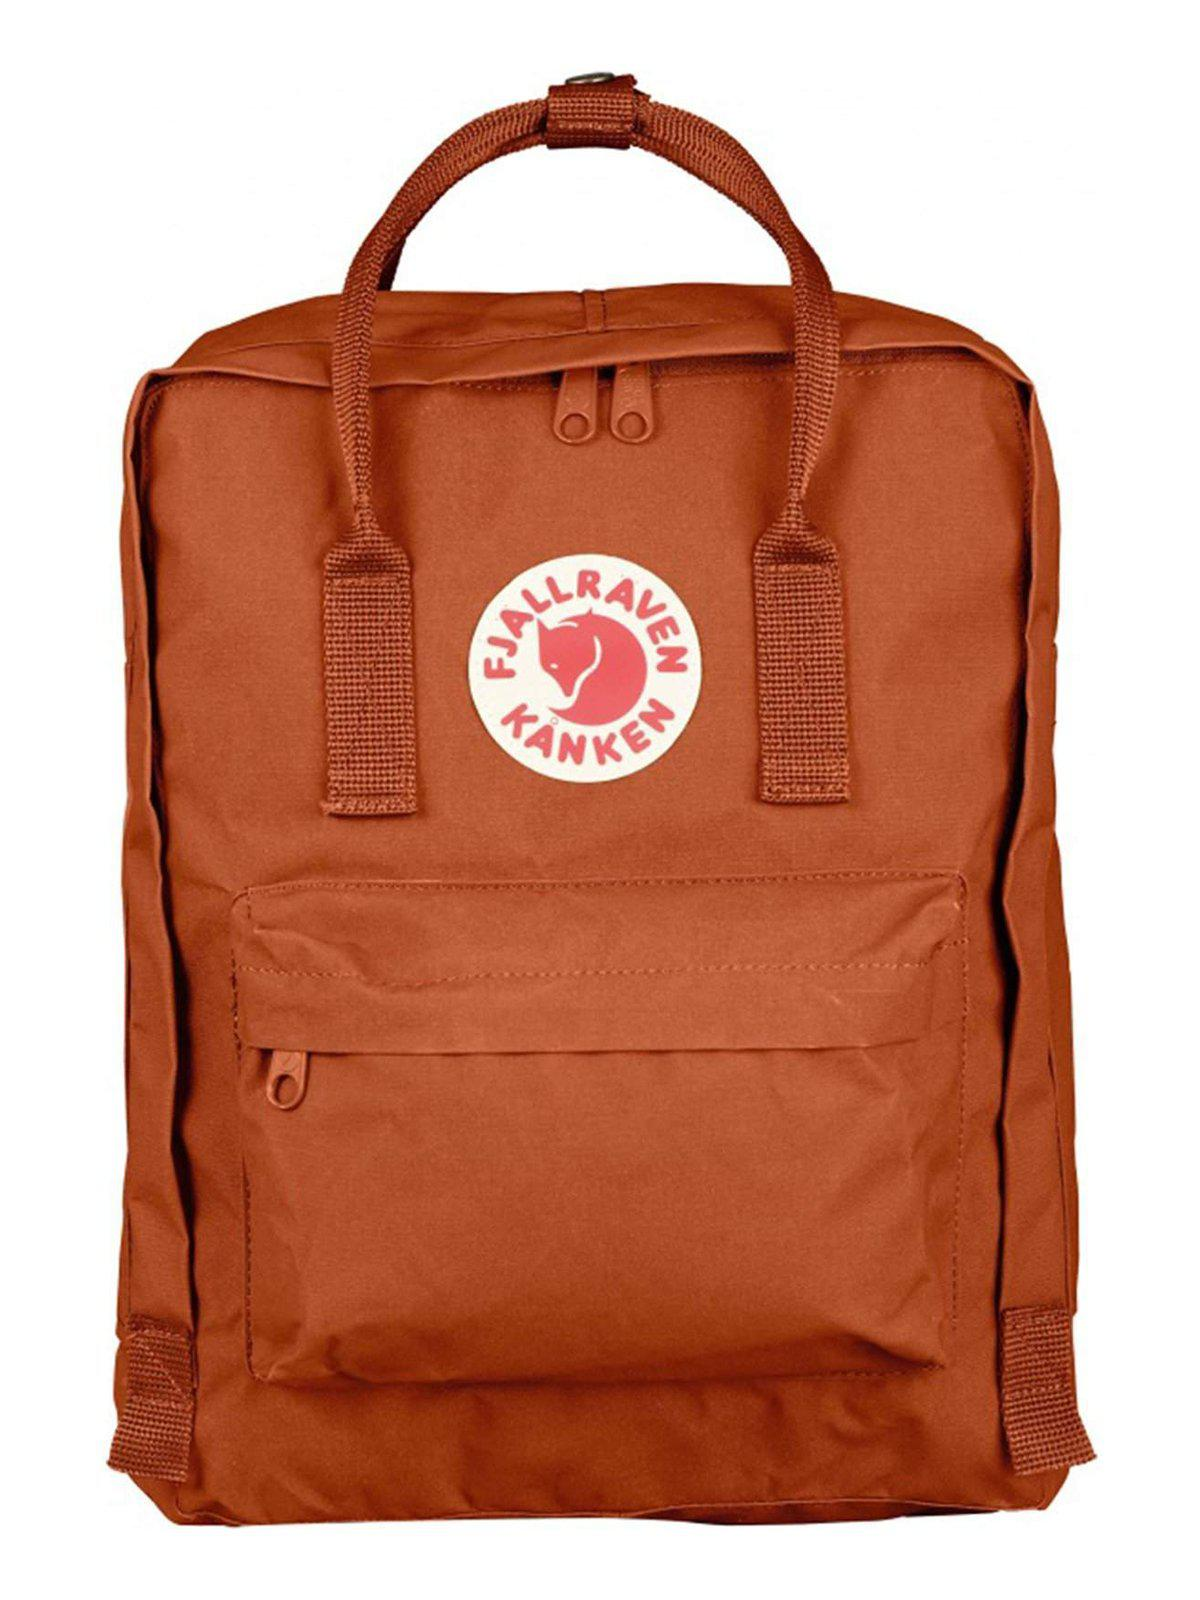 Fjallraven Kanken Classic Backpack Brick - MORE by Morello Indonesia